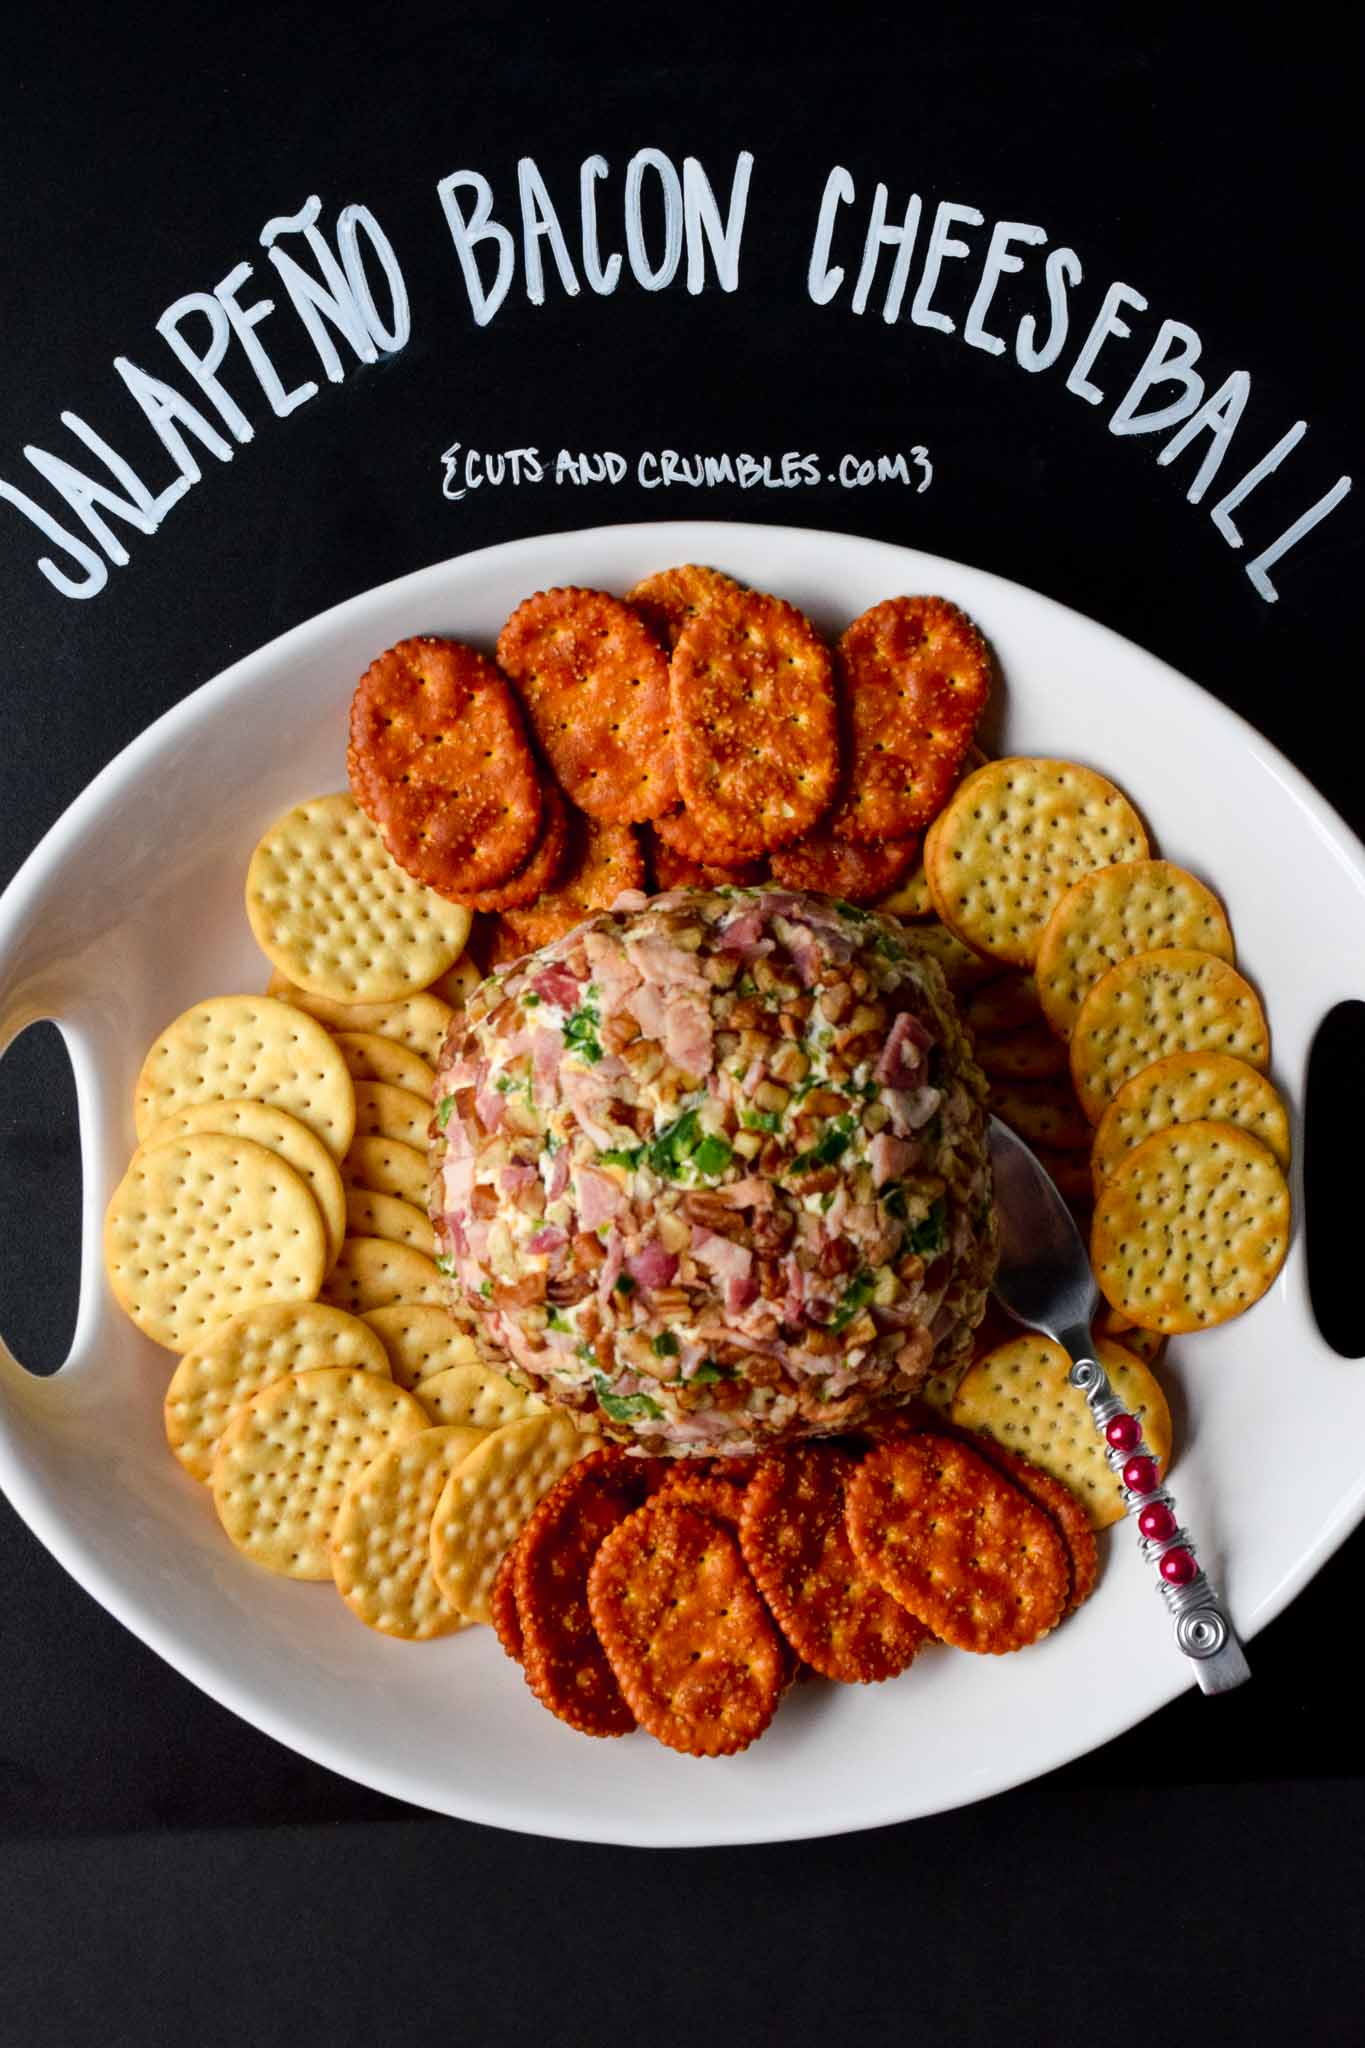 Jalapeño Bacon Cheeseball with title written on chalkboard